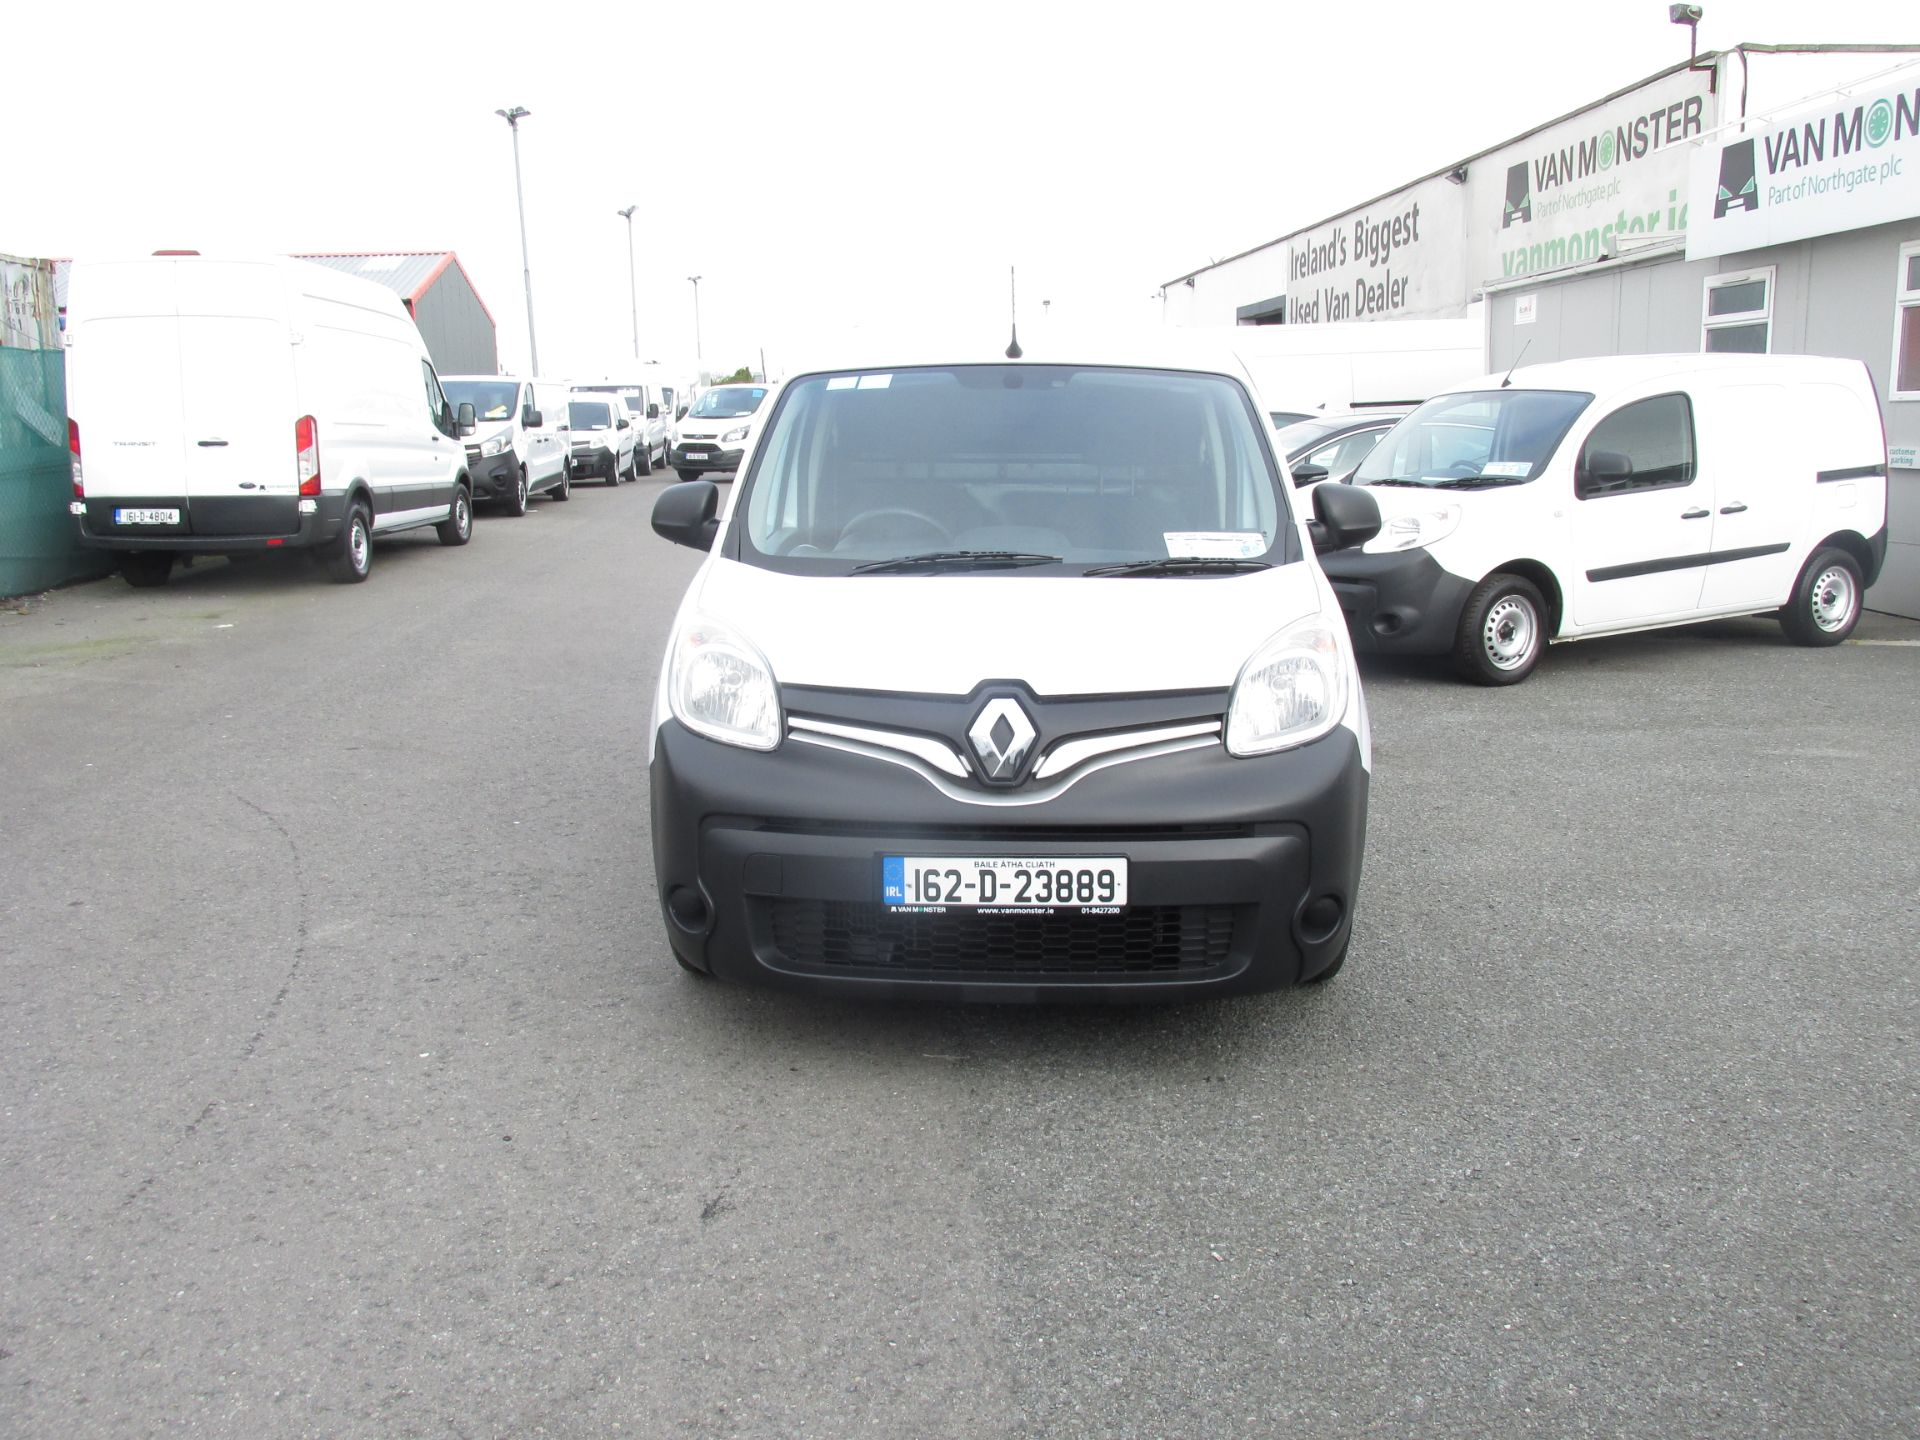 2016 Renault Kangoo ML19 Energy DCI 75 Business 2D (162D23889) Image 2